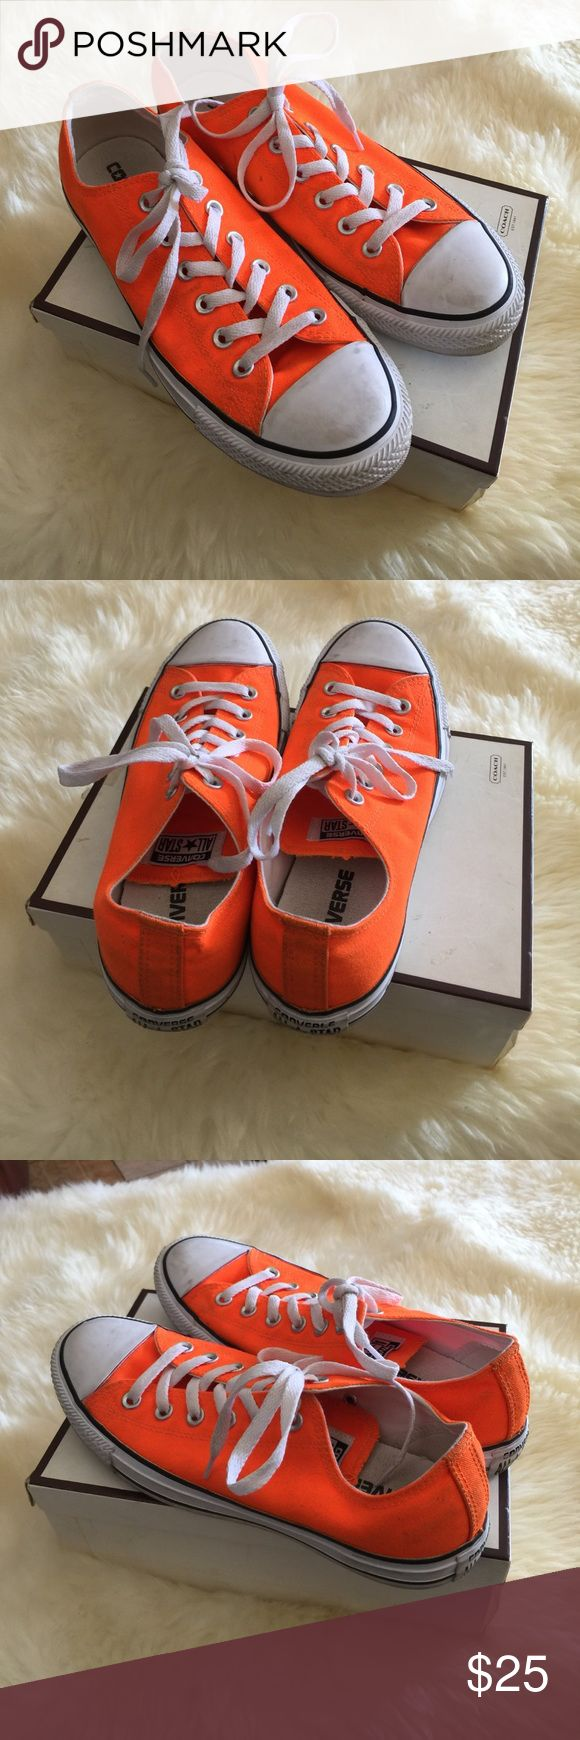 Converse neon orange Gently used, cleaning will hVe then looking like new. Converse Shoes Sneakers